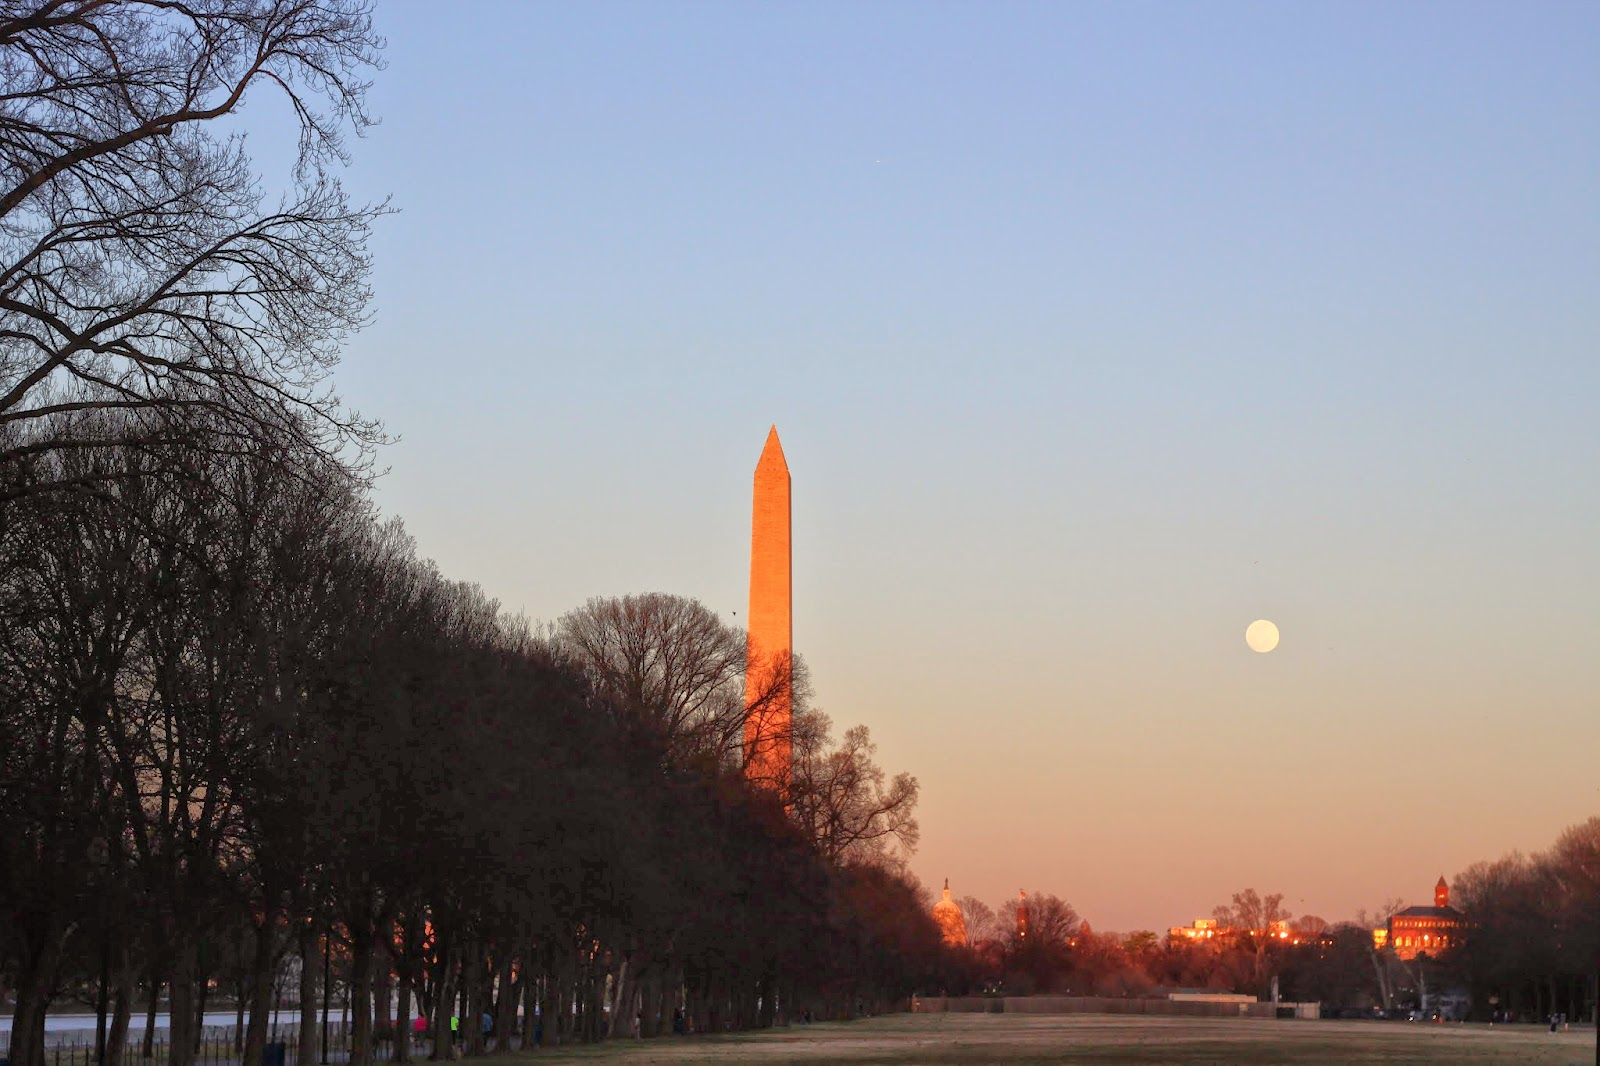 Washington Memorial and the Moon